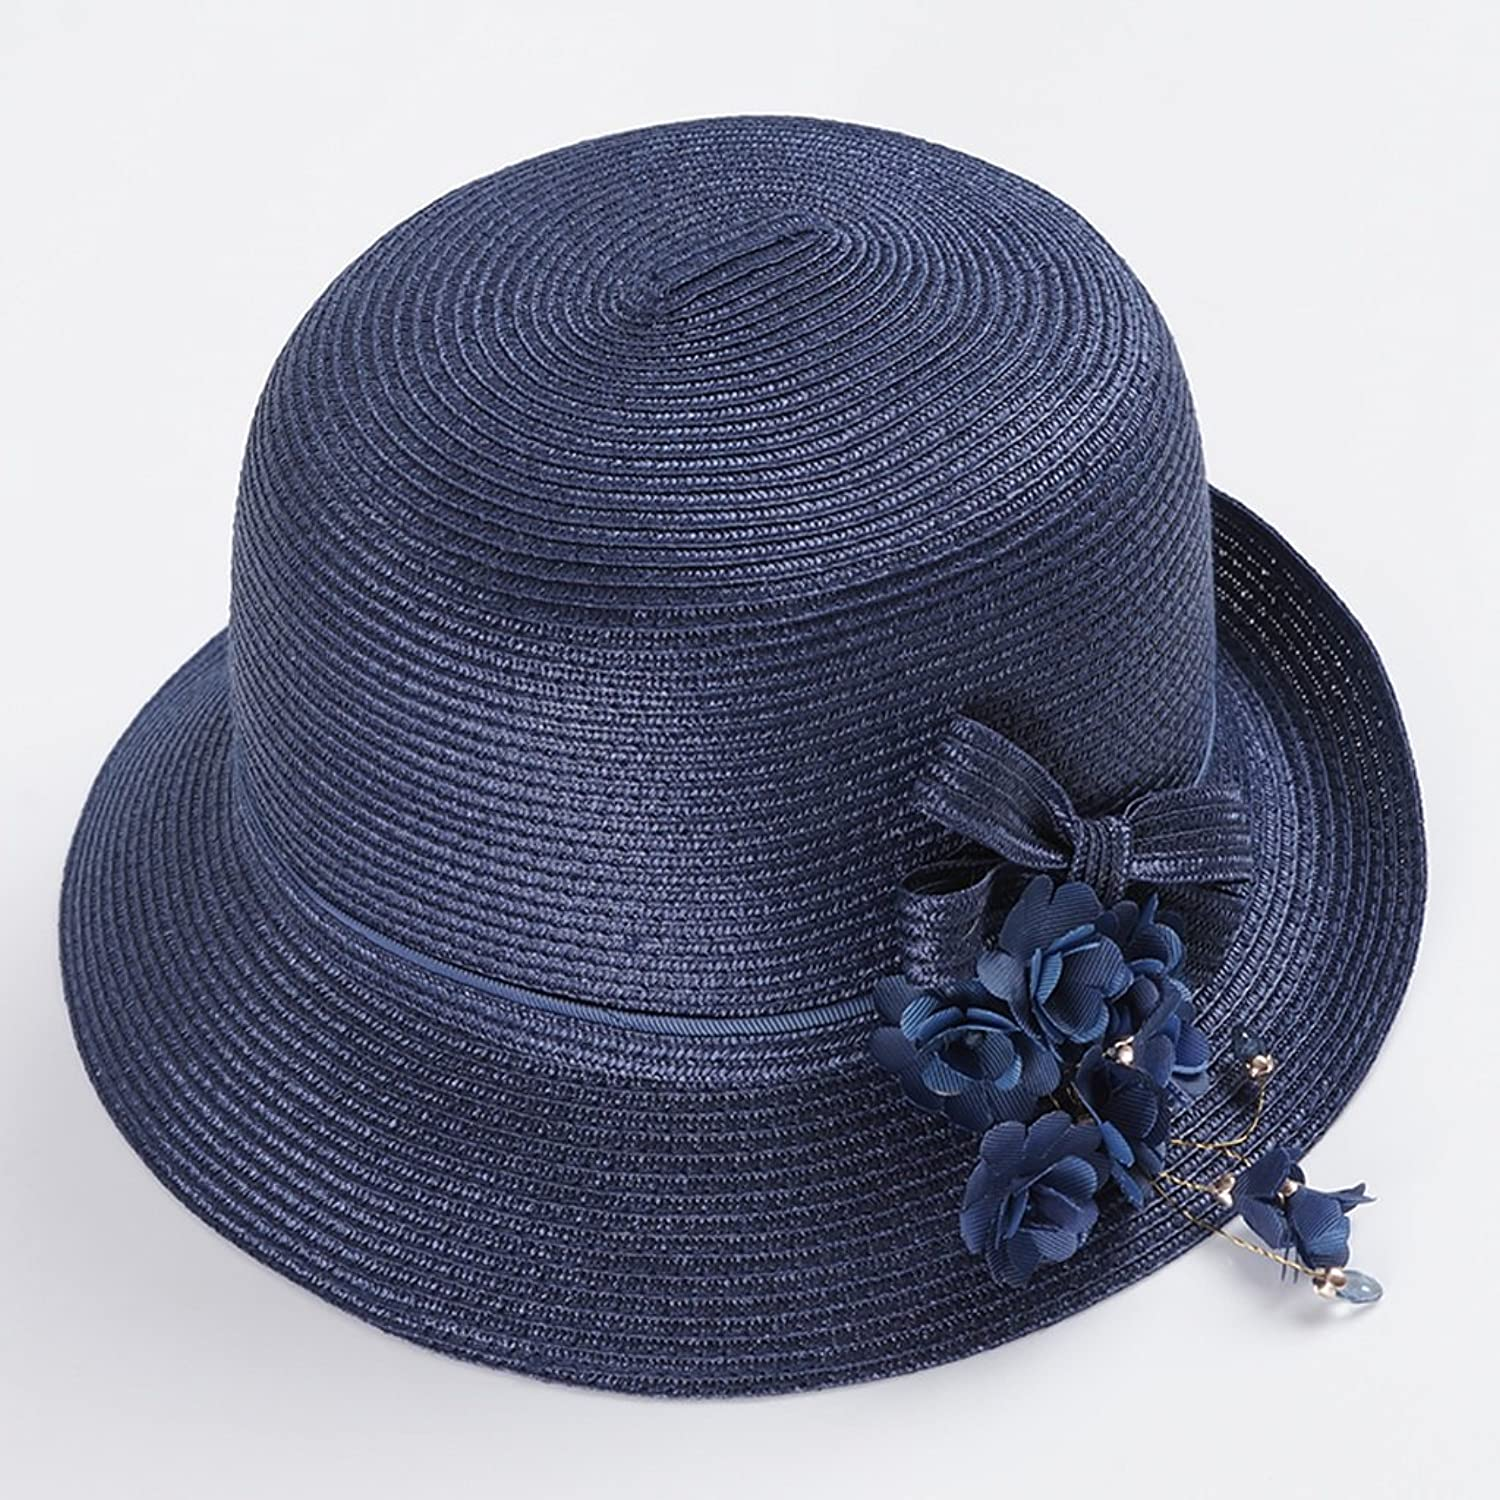 LIZHIQIANG Spring and Summer Female Visor Fashion Wild Sun Predection Sunhat AntiUV Travel Straw Hat (color   Dark bluee)